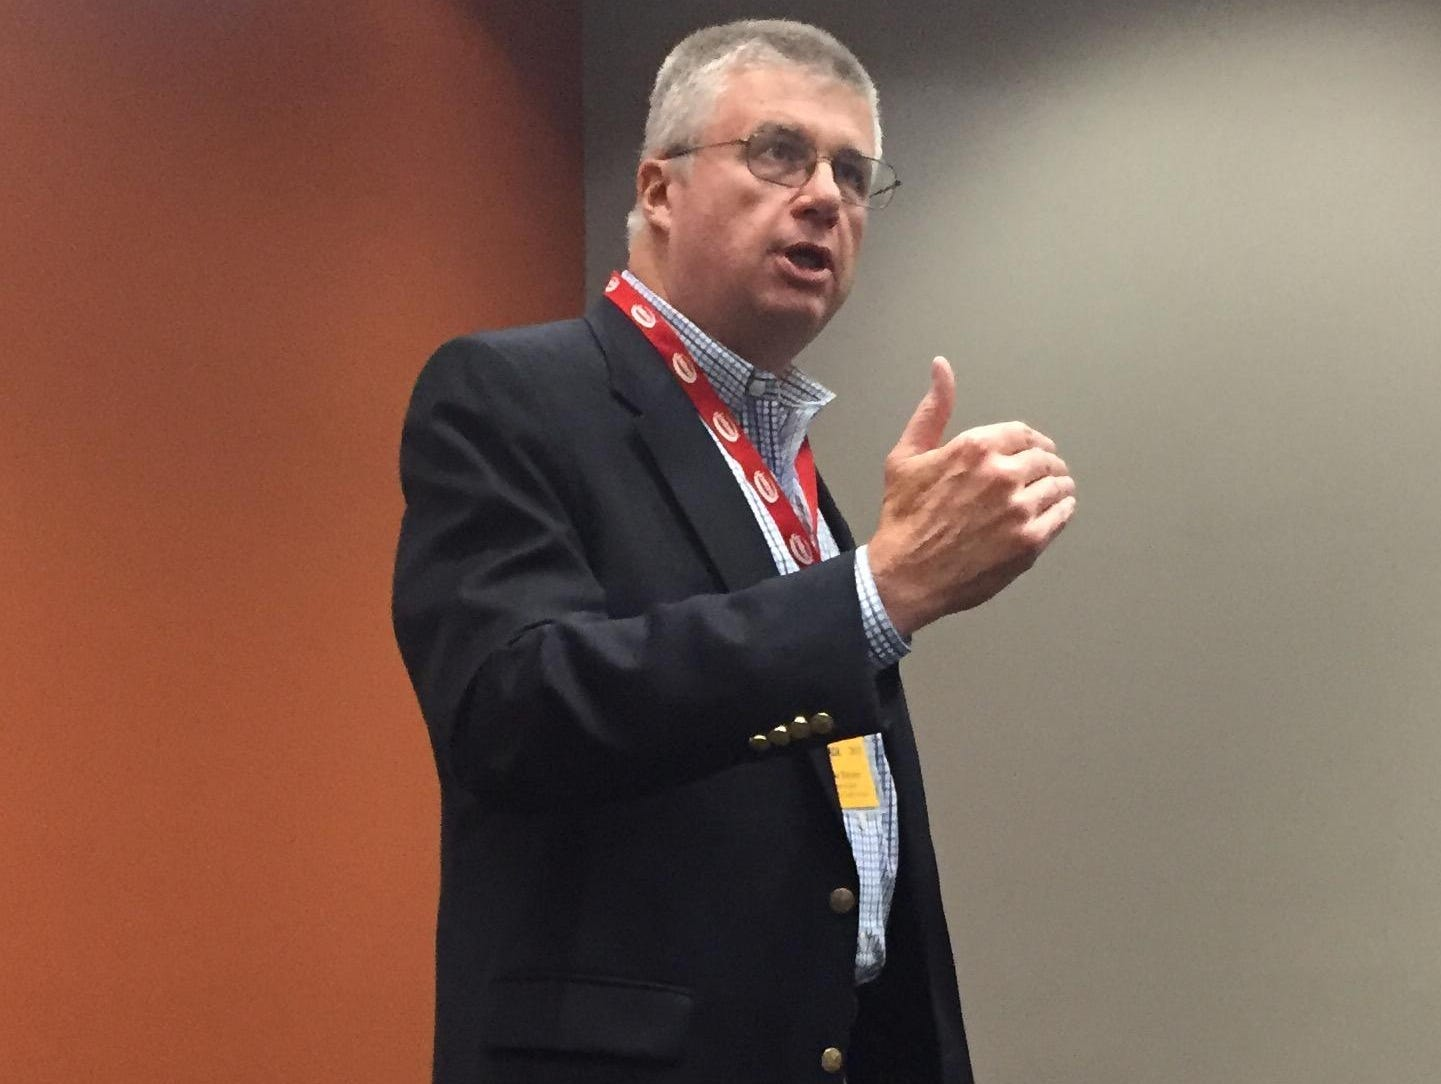 Greenville County Schools Superintendent Burke Royster makes a point during the South Carolina Athletic Coaches Association All-Sports Clinic Tuesday at the TD Convention Center.